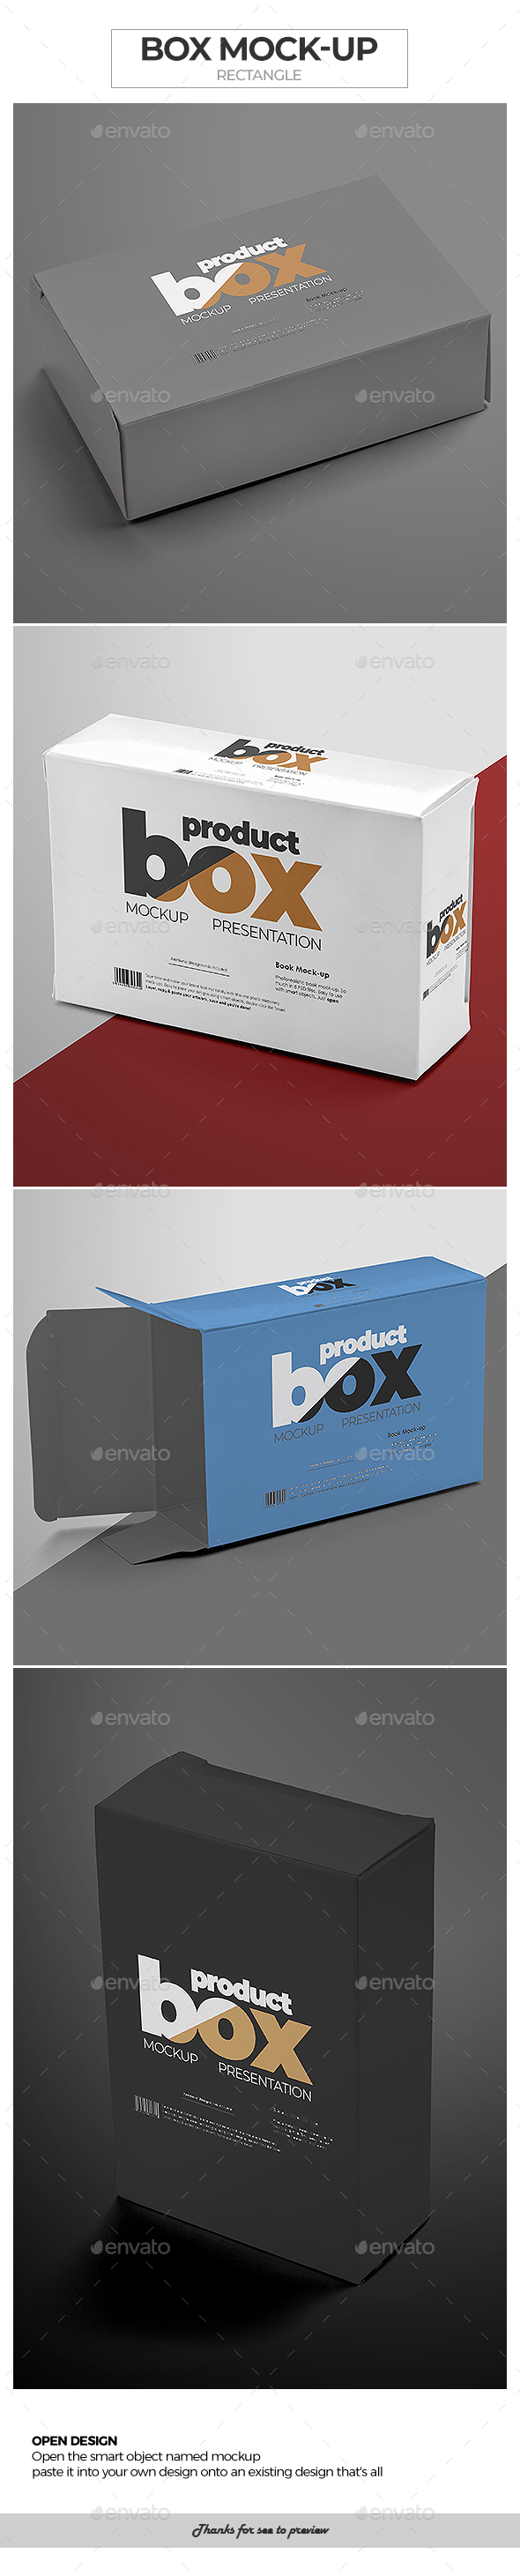 Box Mock-Up / Rectangle - Packaging Product Mock-Ups